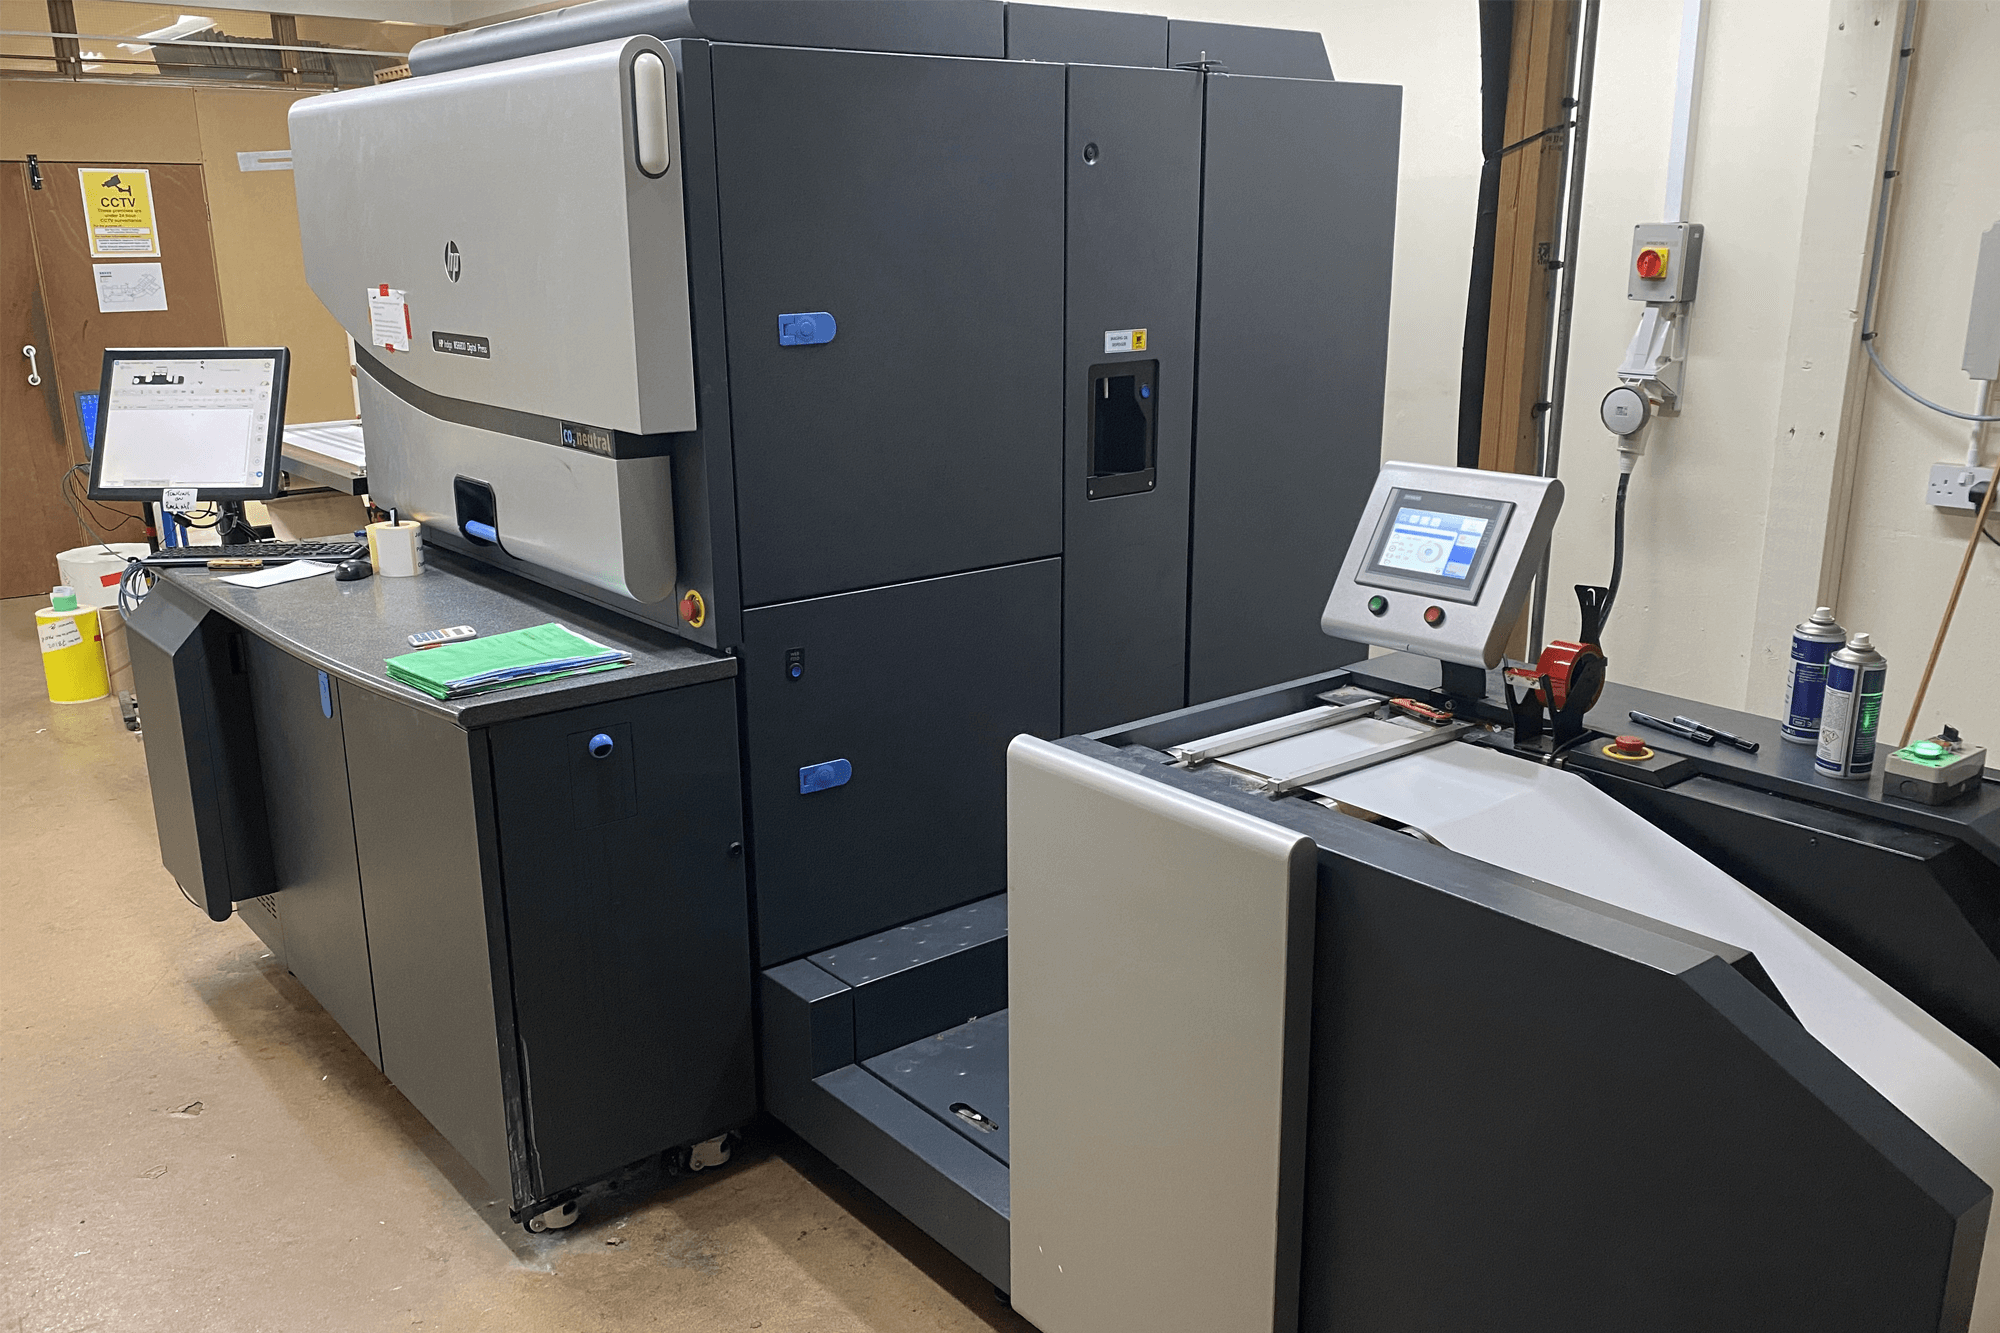 A large electrical printer